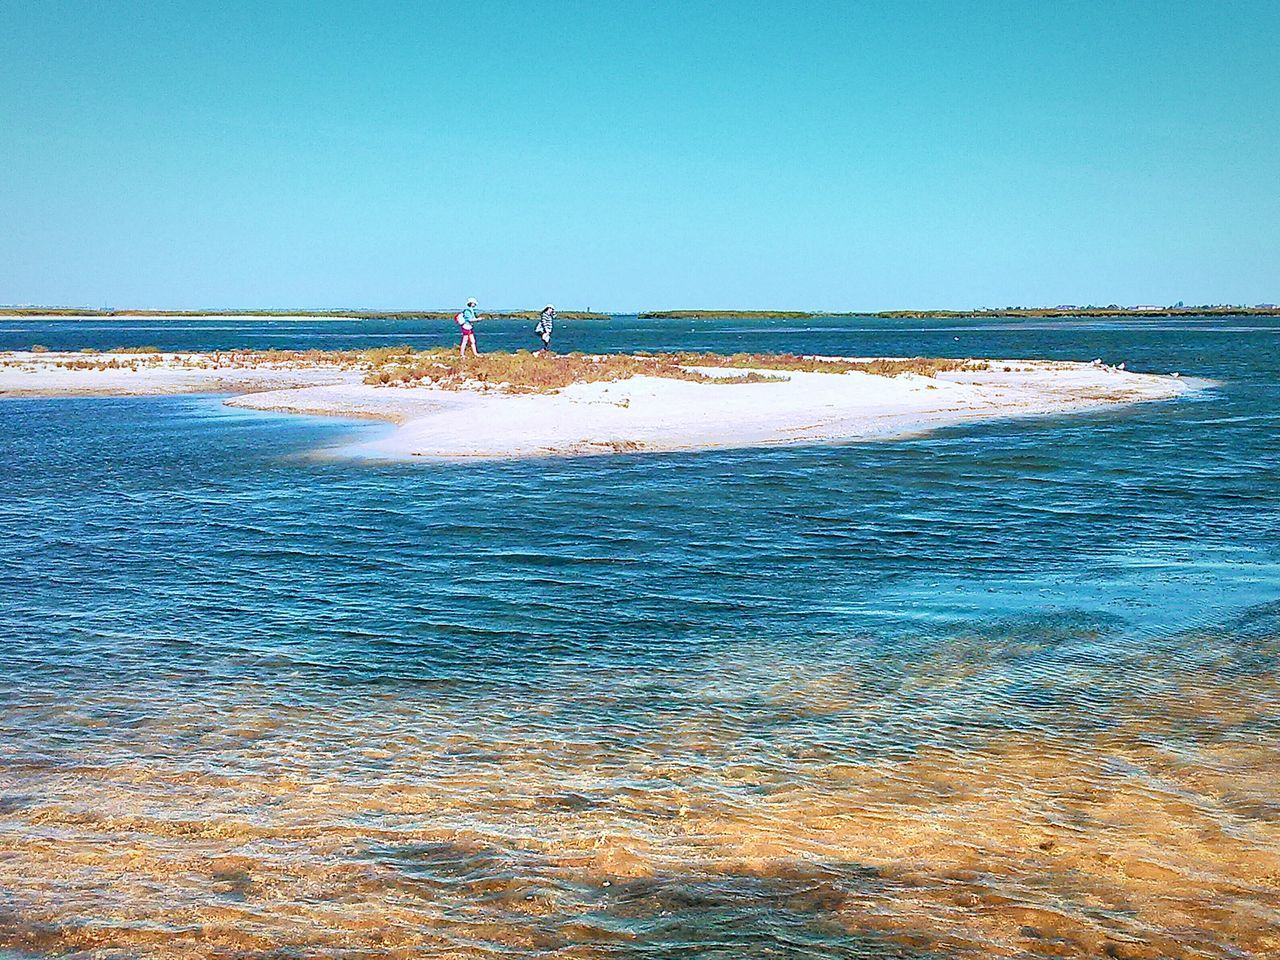 Seaview Outdoors Background Backgrounds Textures And Surfaces Pastel Power Pastel Colors Sea Go Away Nature Journey Beach Beachphotography Azovsea Sea View Sea_collection Seascape Relaxing Moments Vacation Time Seaside Sublime Living My Favorite Photo